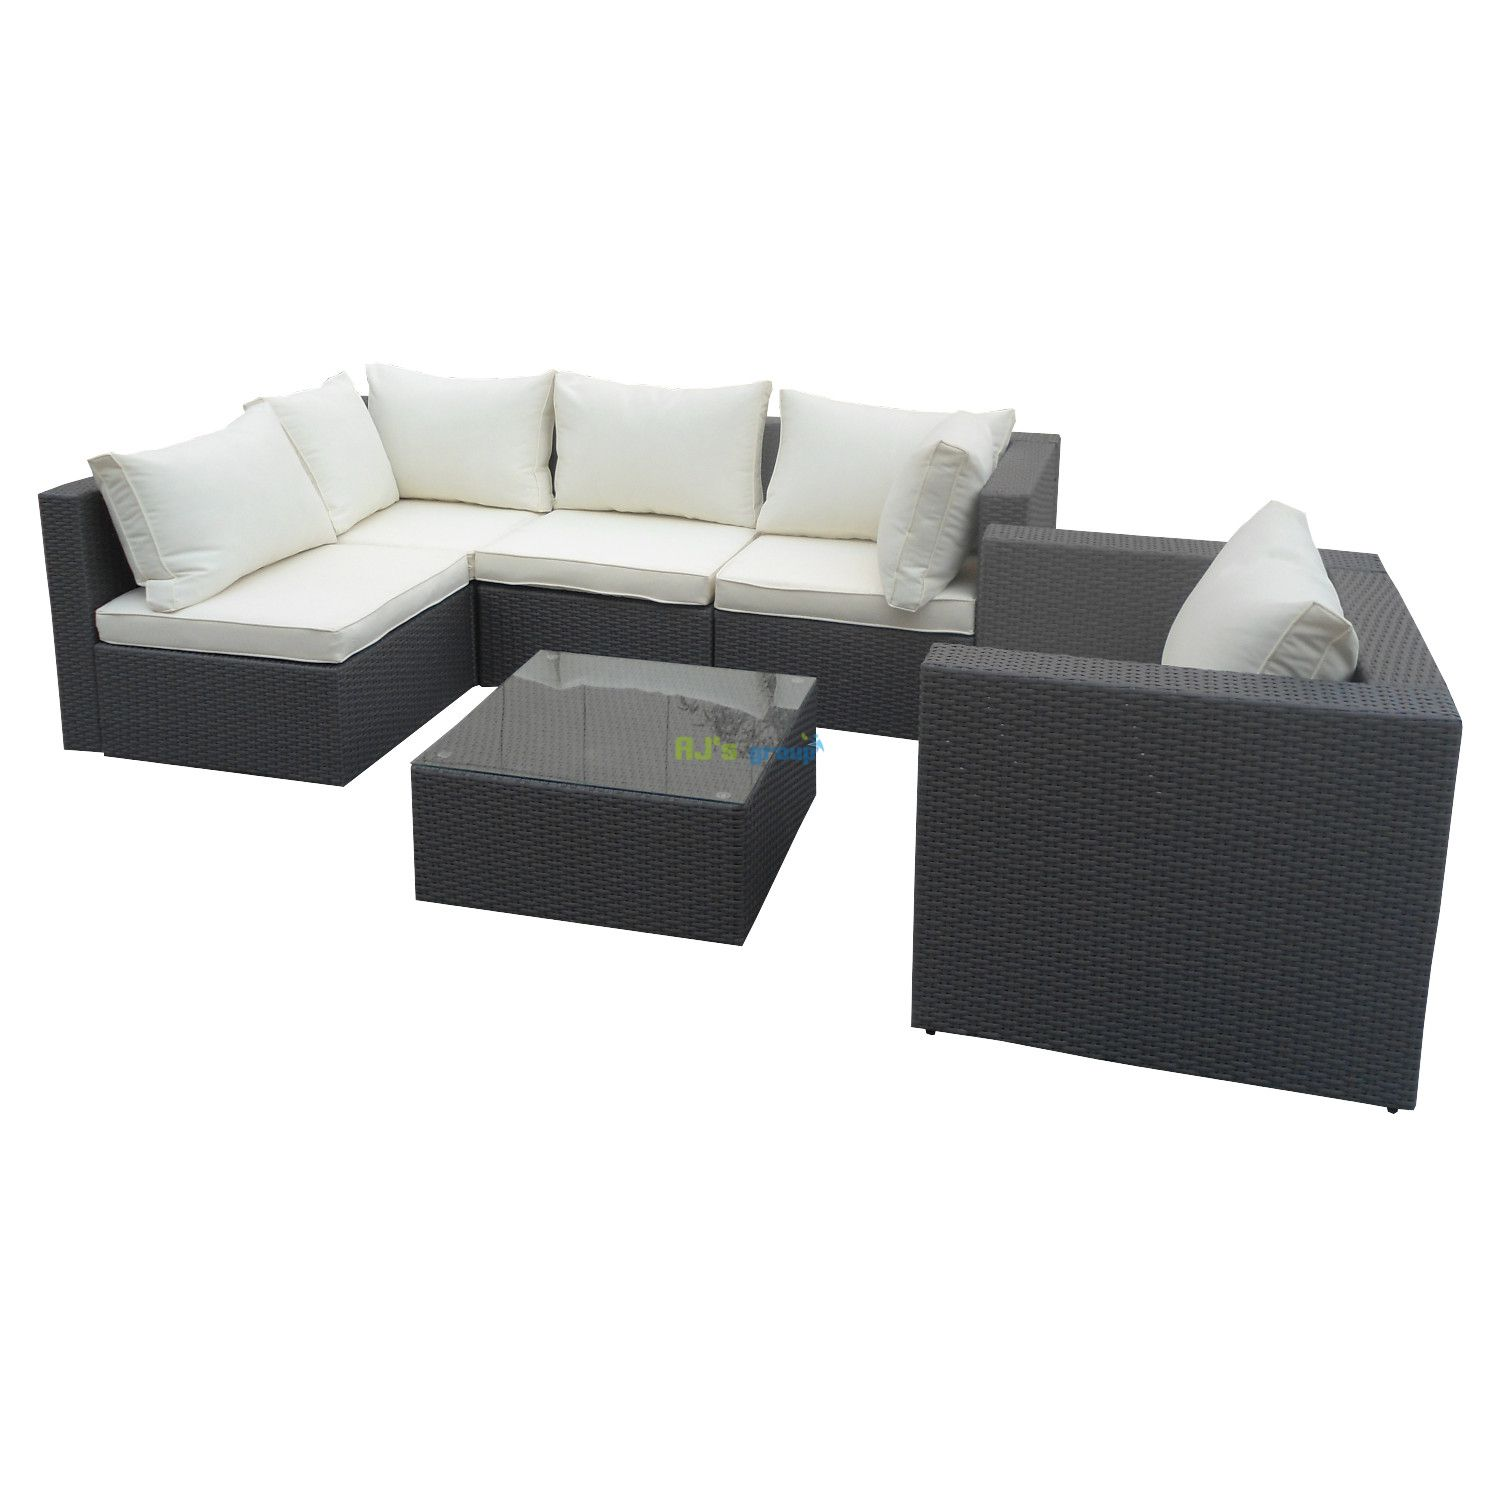 Coop Gartenmobel Sitzkissen : Rattan Wicker Garden Patio Set Jamaica mixedbrown Outdoor Lounge